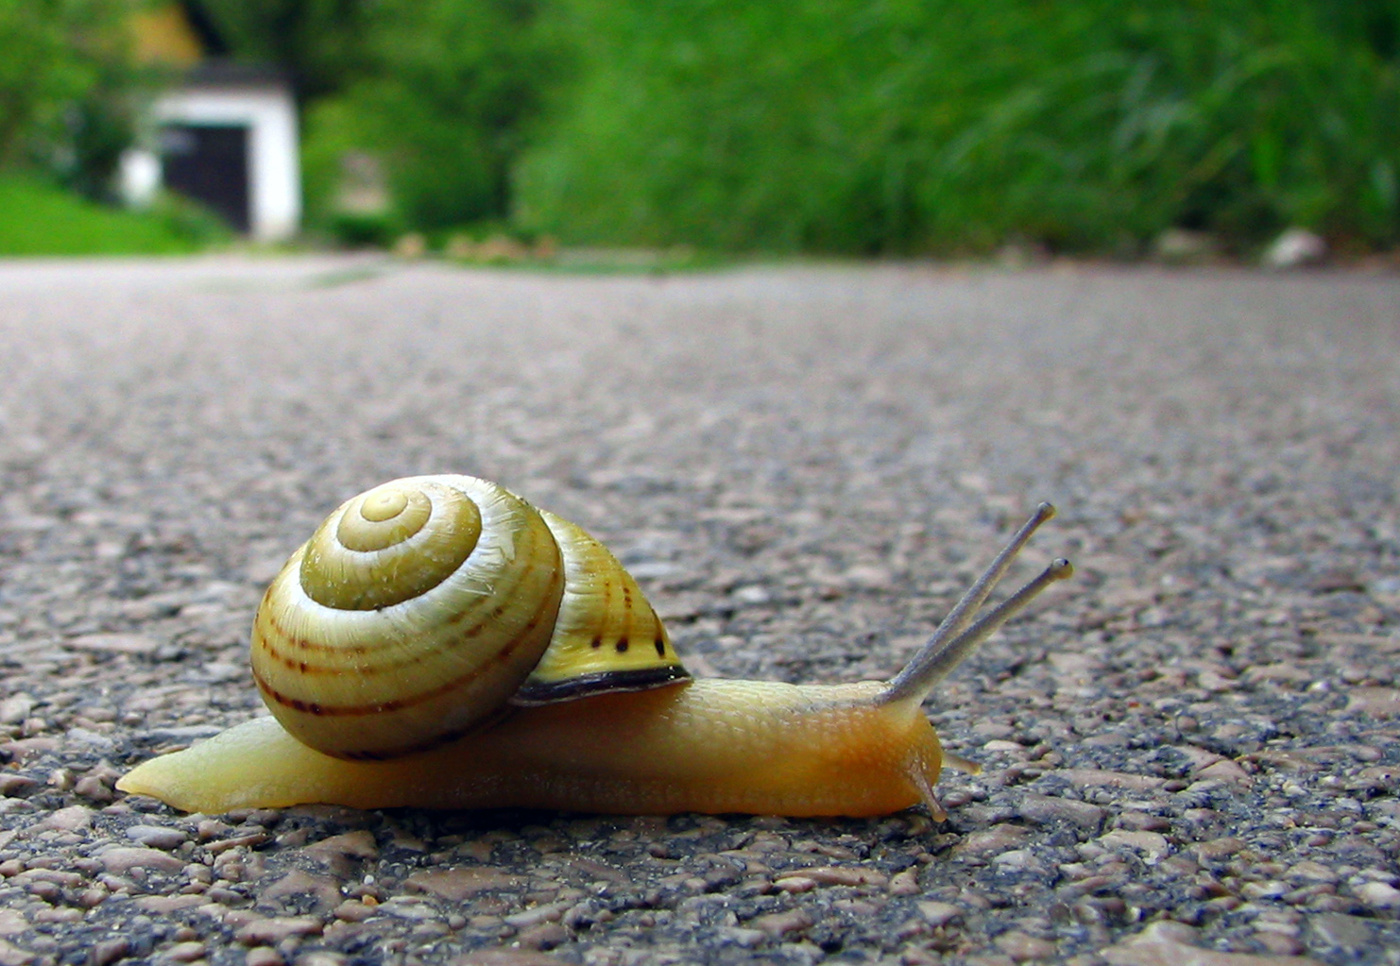 Snails can t live in startup